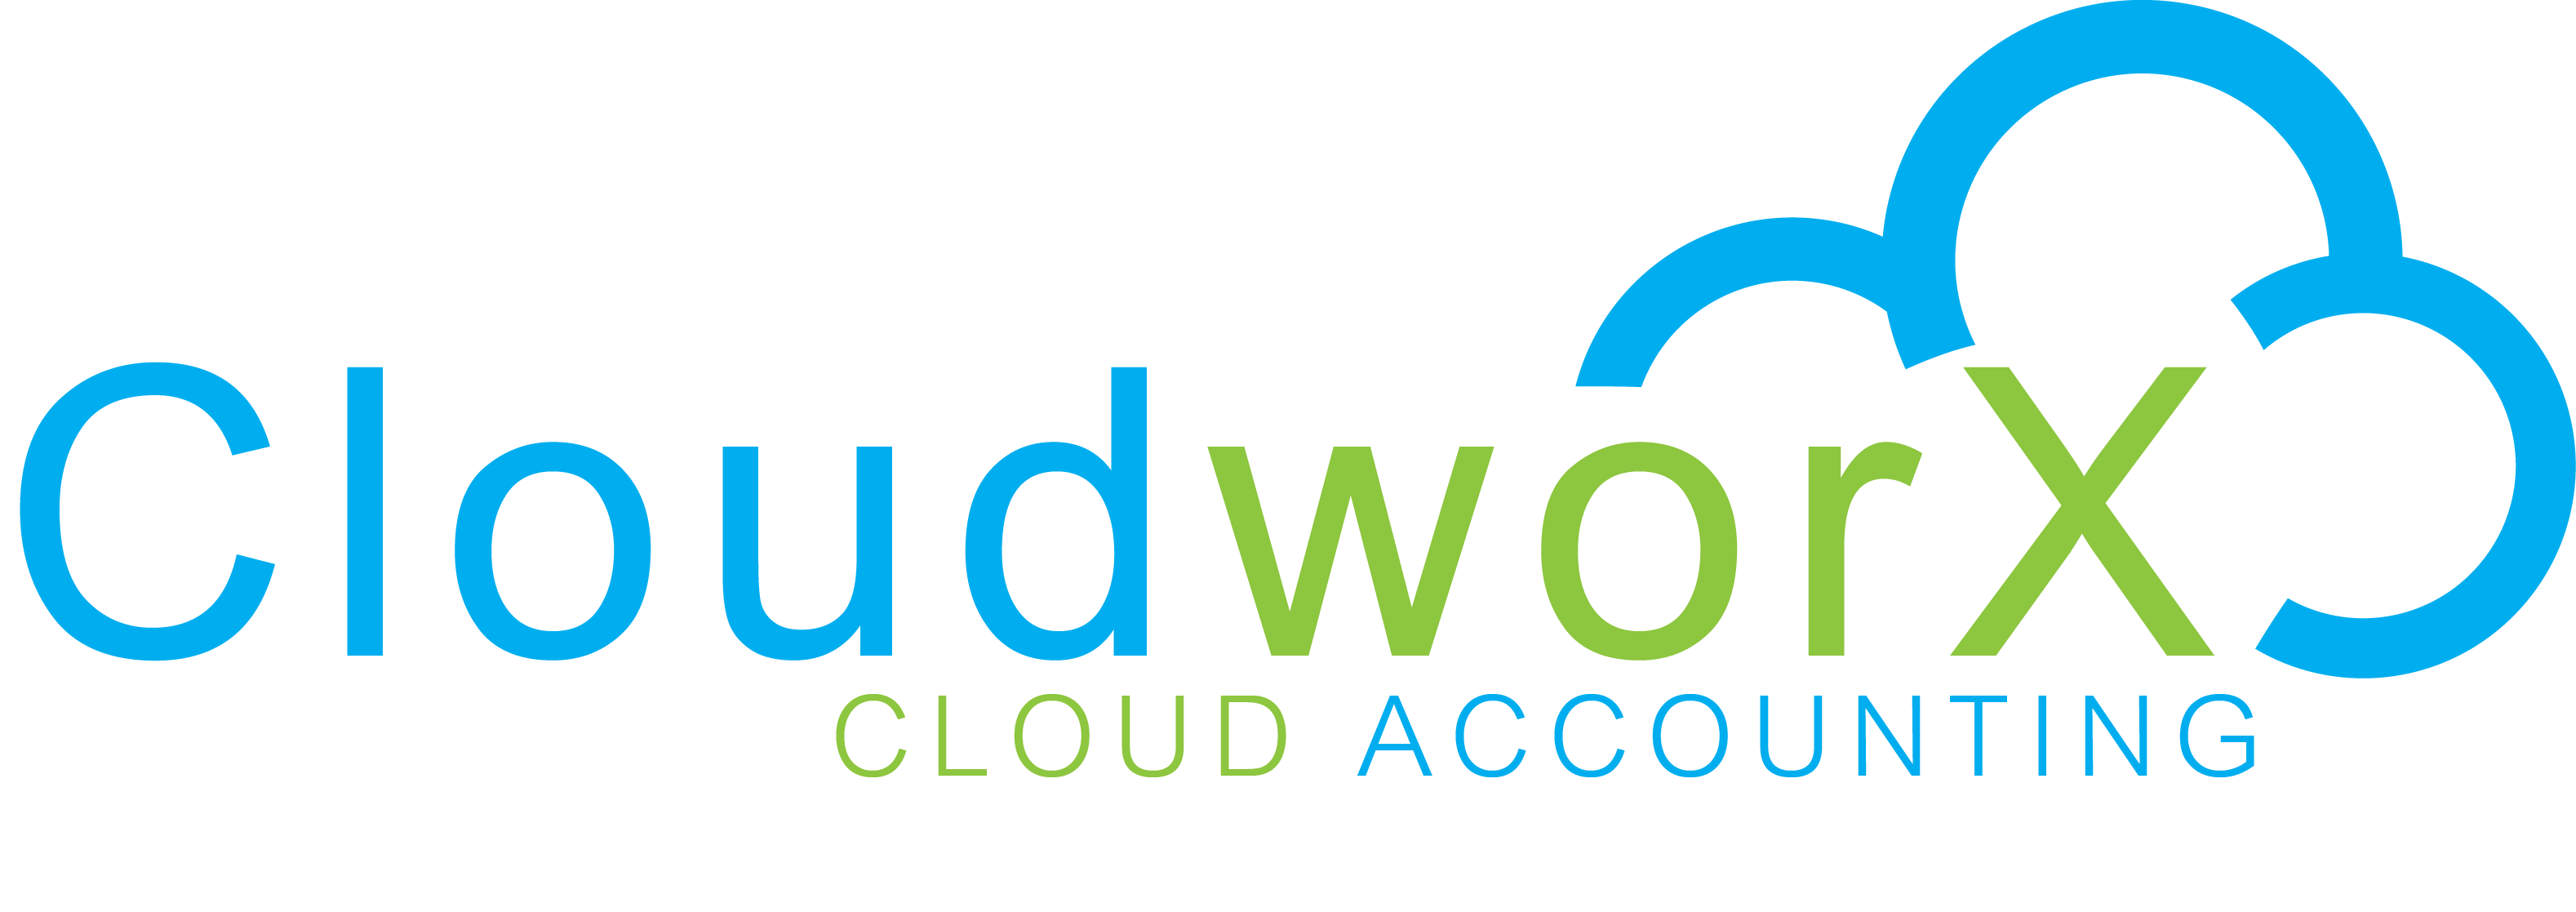 Cloudworx Accounting Solutions Pty Ltd